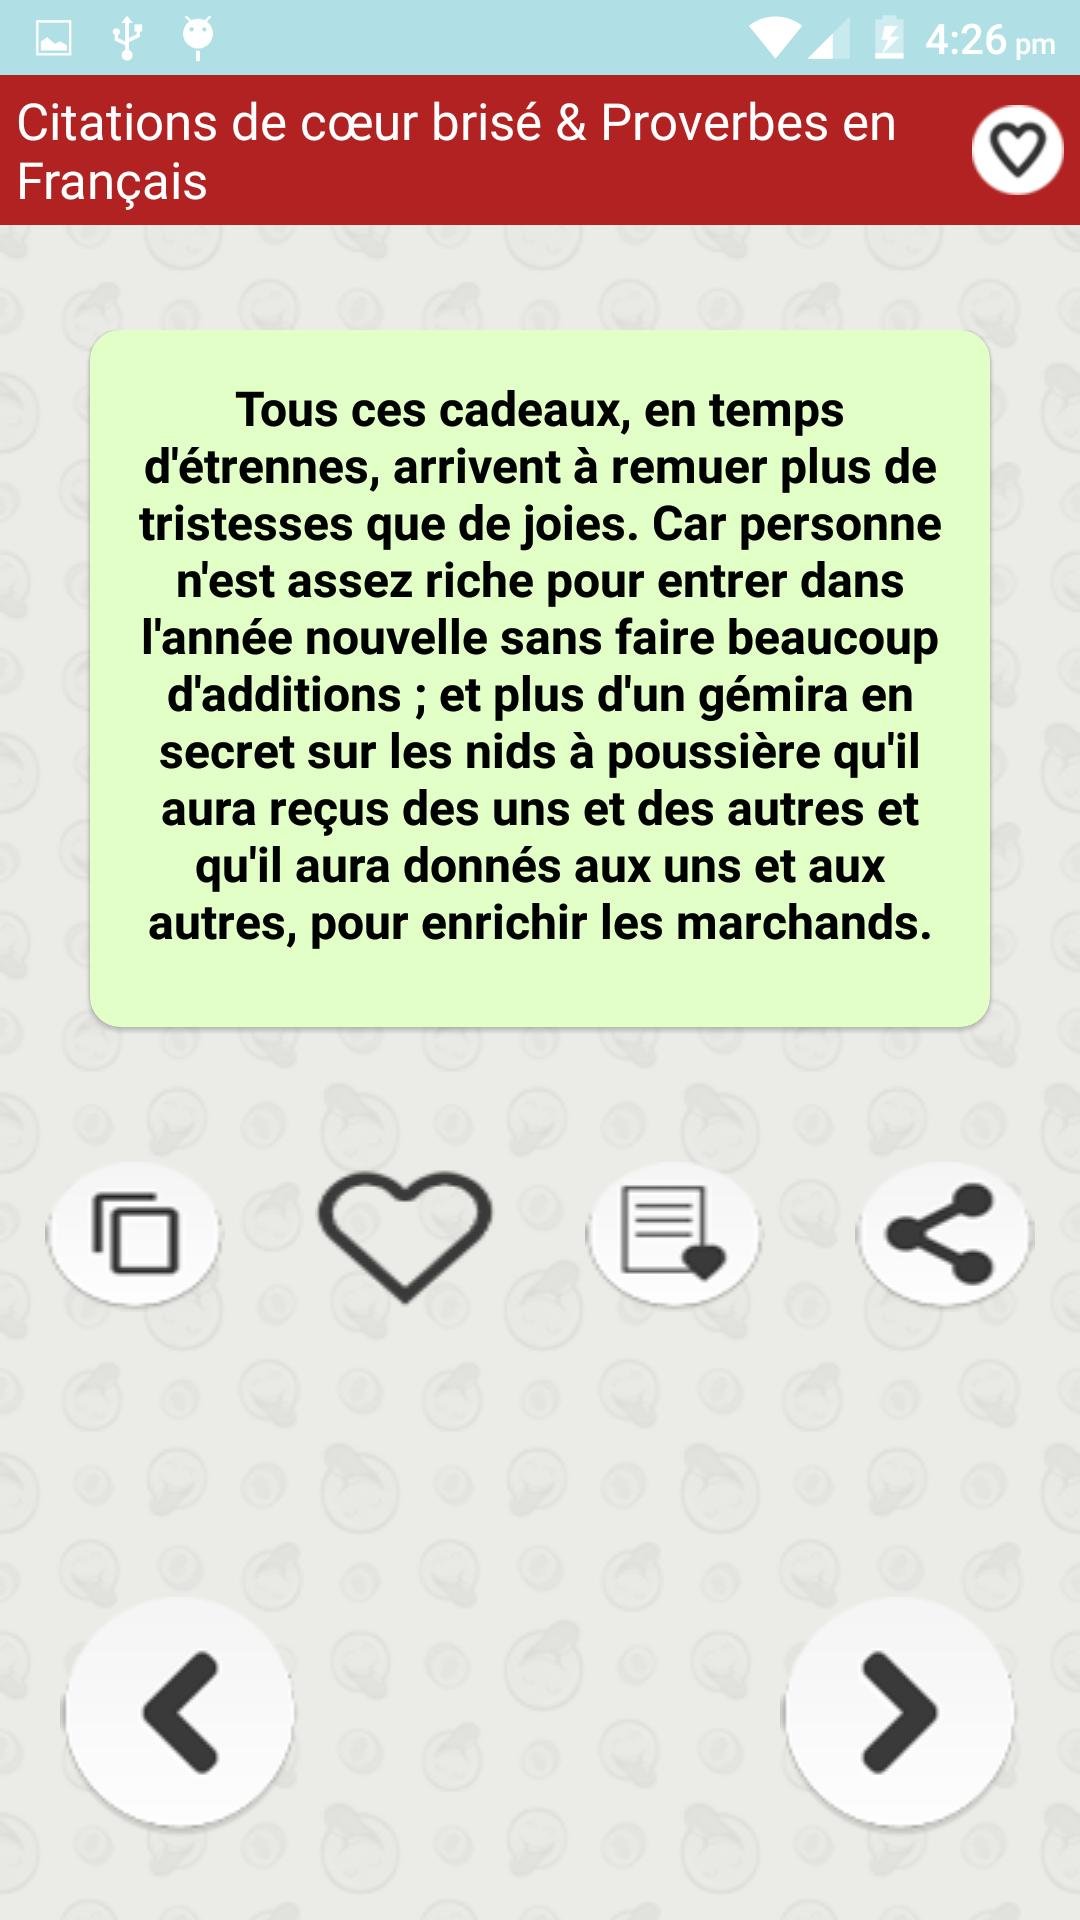 Citations De Cœur Brisé For Android Apk Download